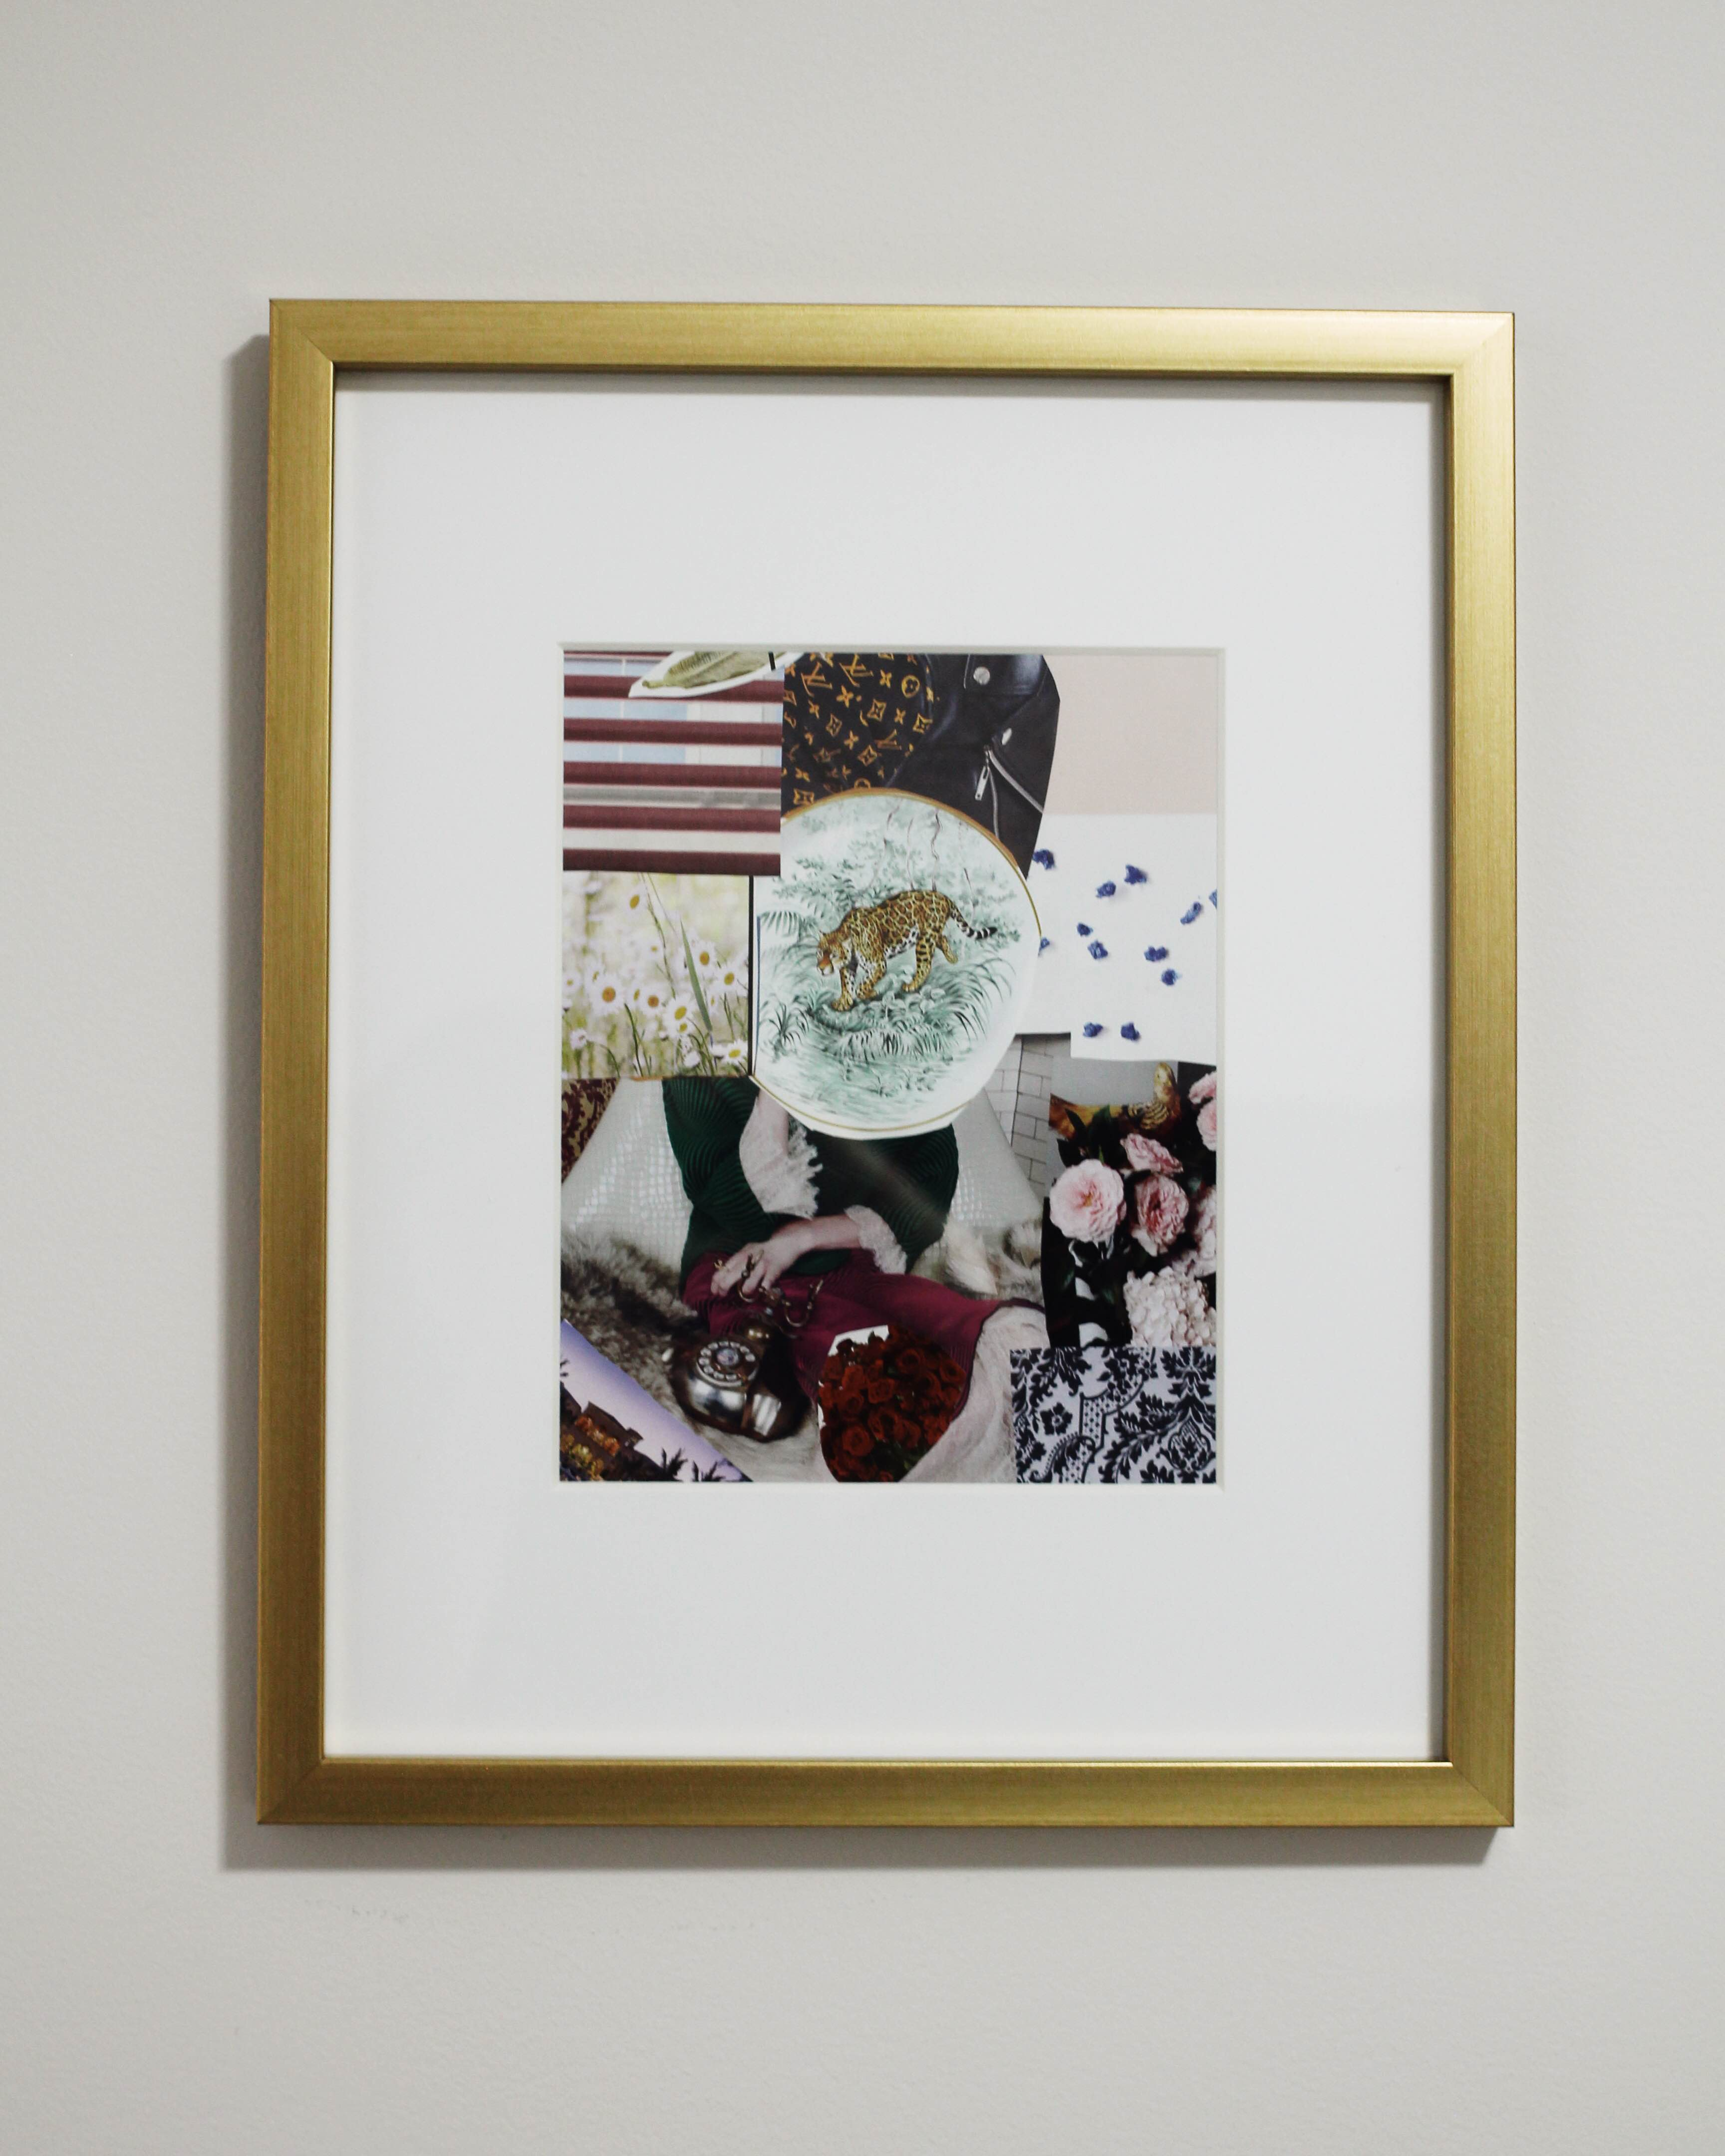 A gold framed photo collage of plants, a painting of a lion, a designer bag and petals on a white wall